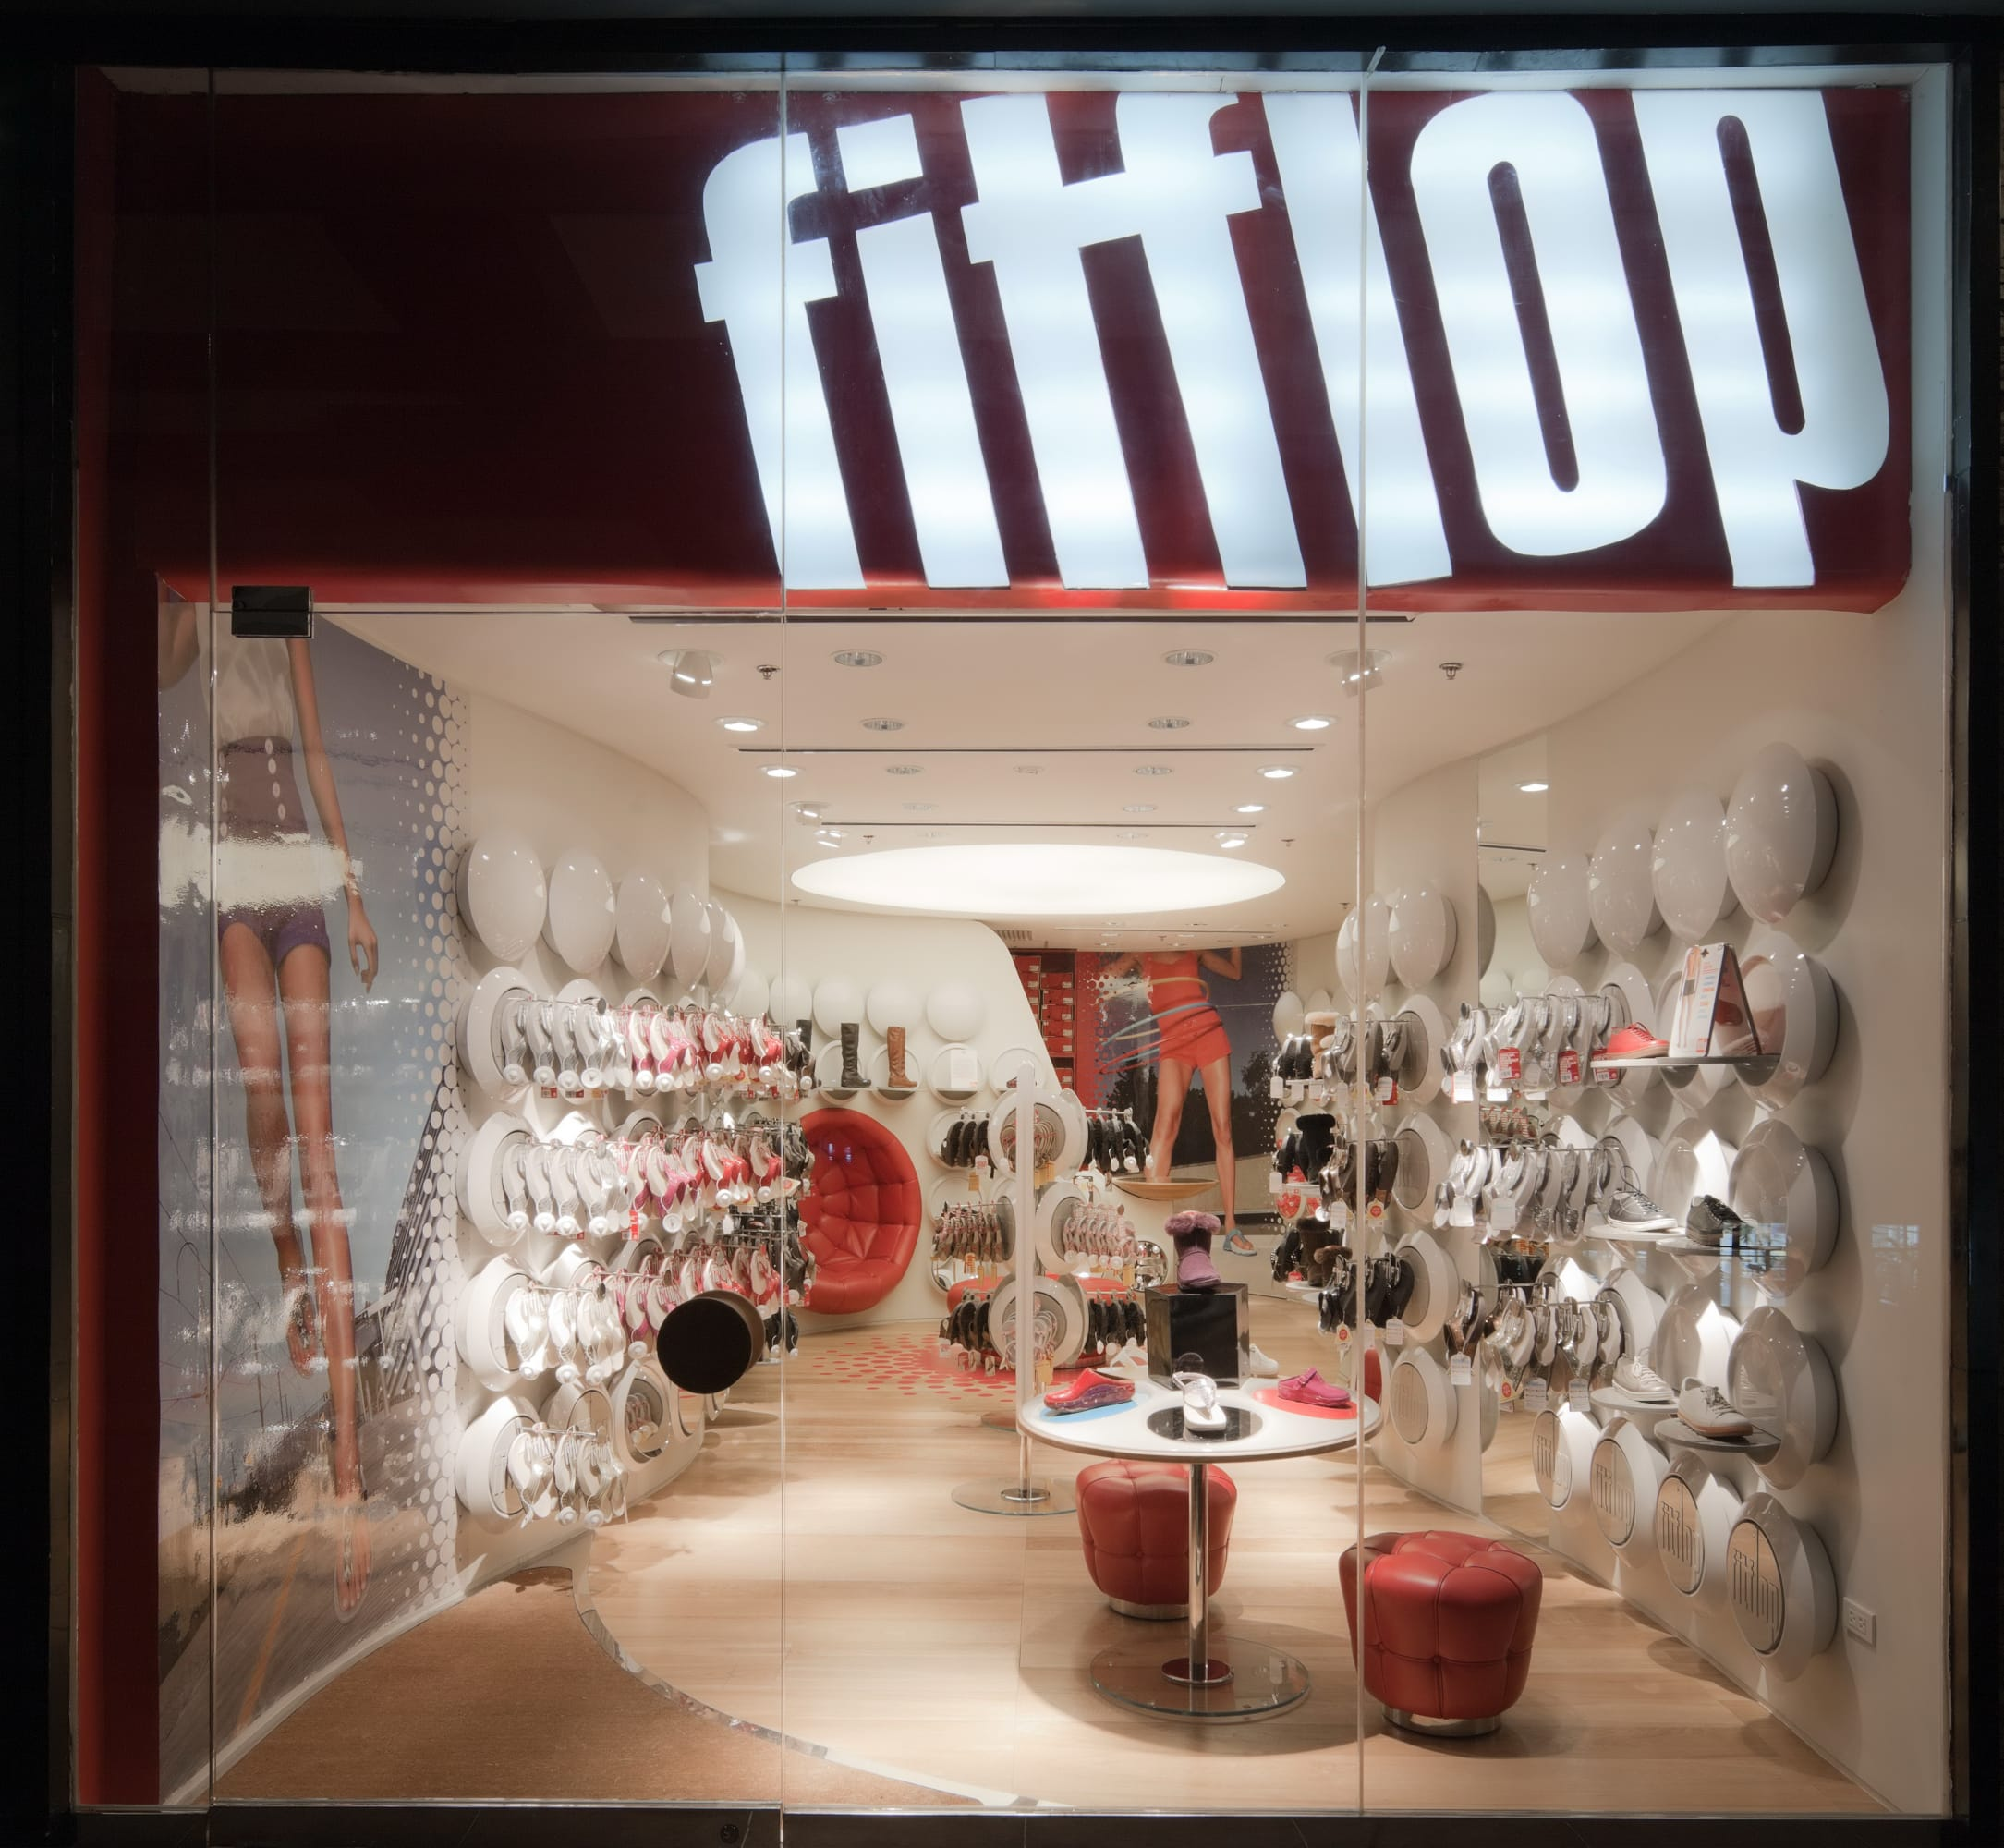 separation shoes 7ca19 f46b4 Sybarite Architects · FitFlop · Divisare